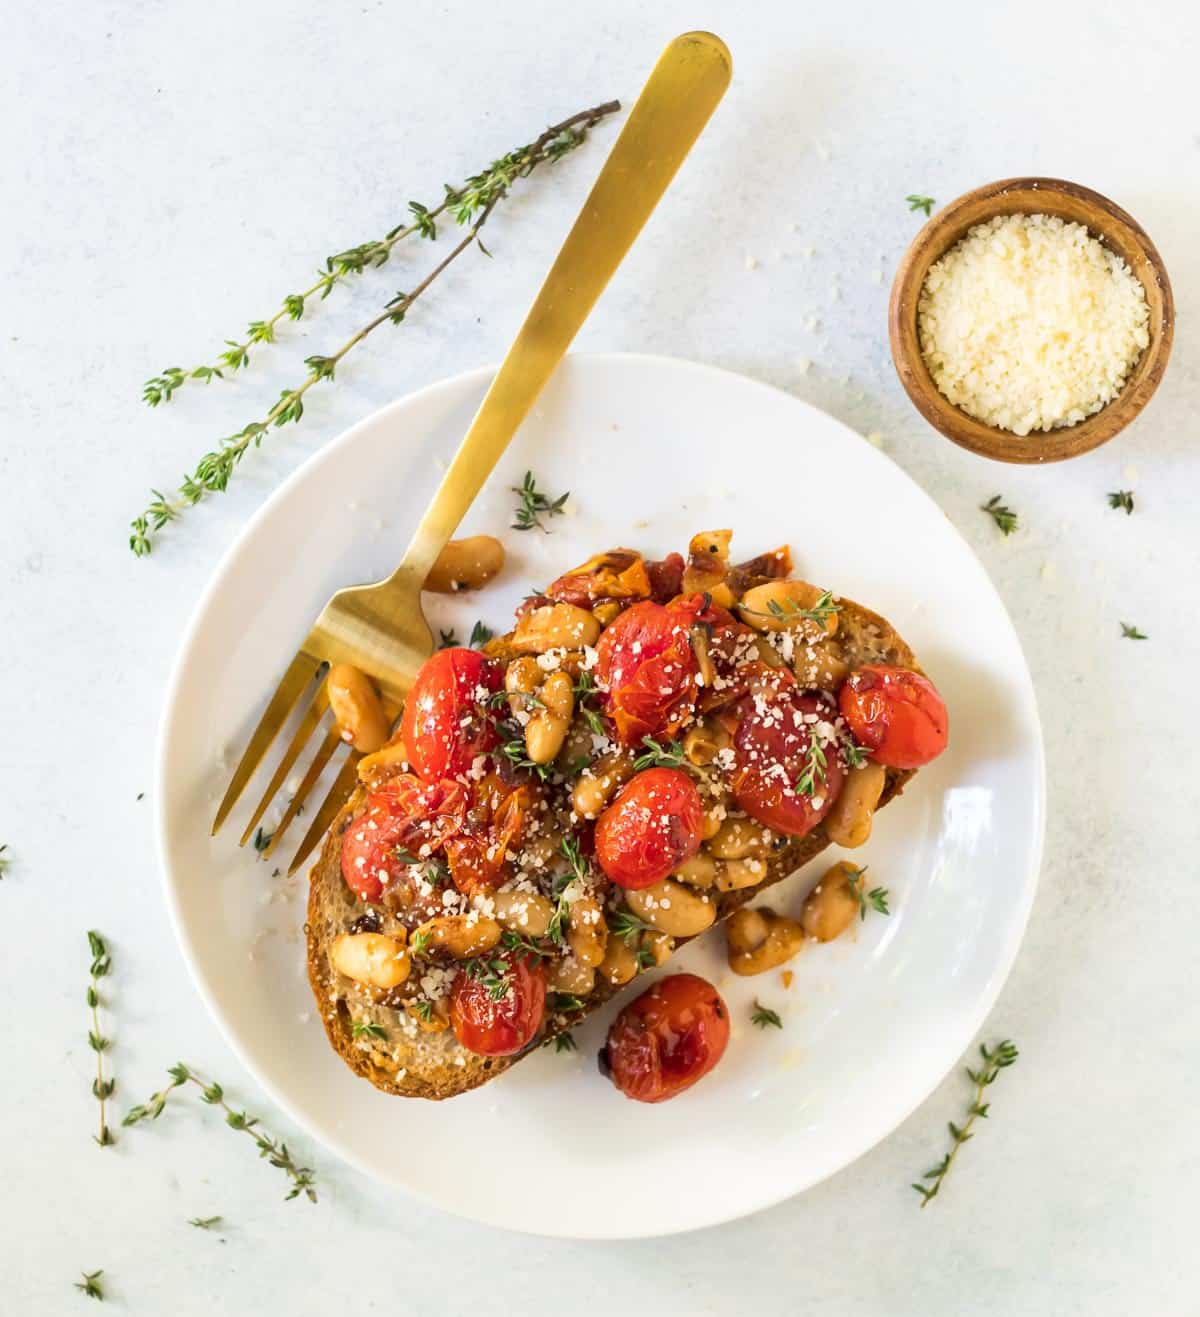 Simple and delicious Tuscan White Bean Tomato Toasts. Creamy white beans, bursting cherry tomatoes, olive oil, and garlic, served over toasted bread. A fast and easy, filling vegetarian recipe that's great for easy, healthy, and budget friendly lunches and dinners!